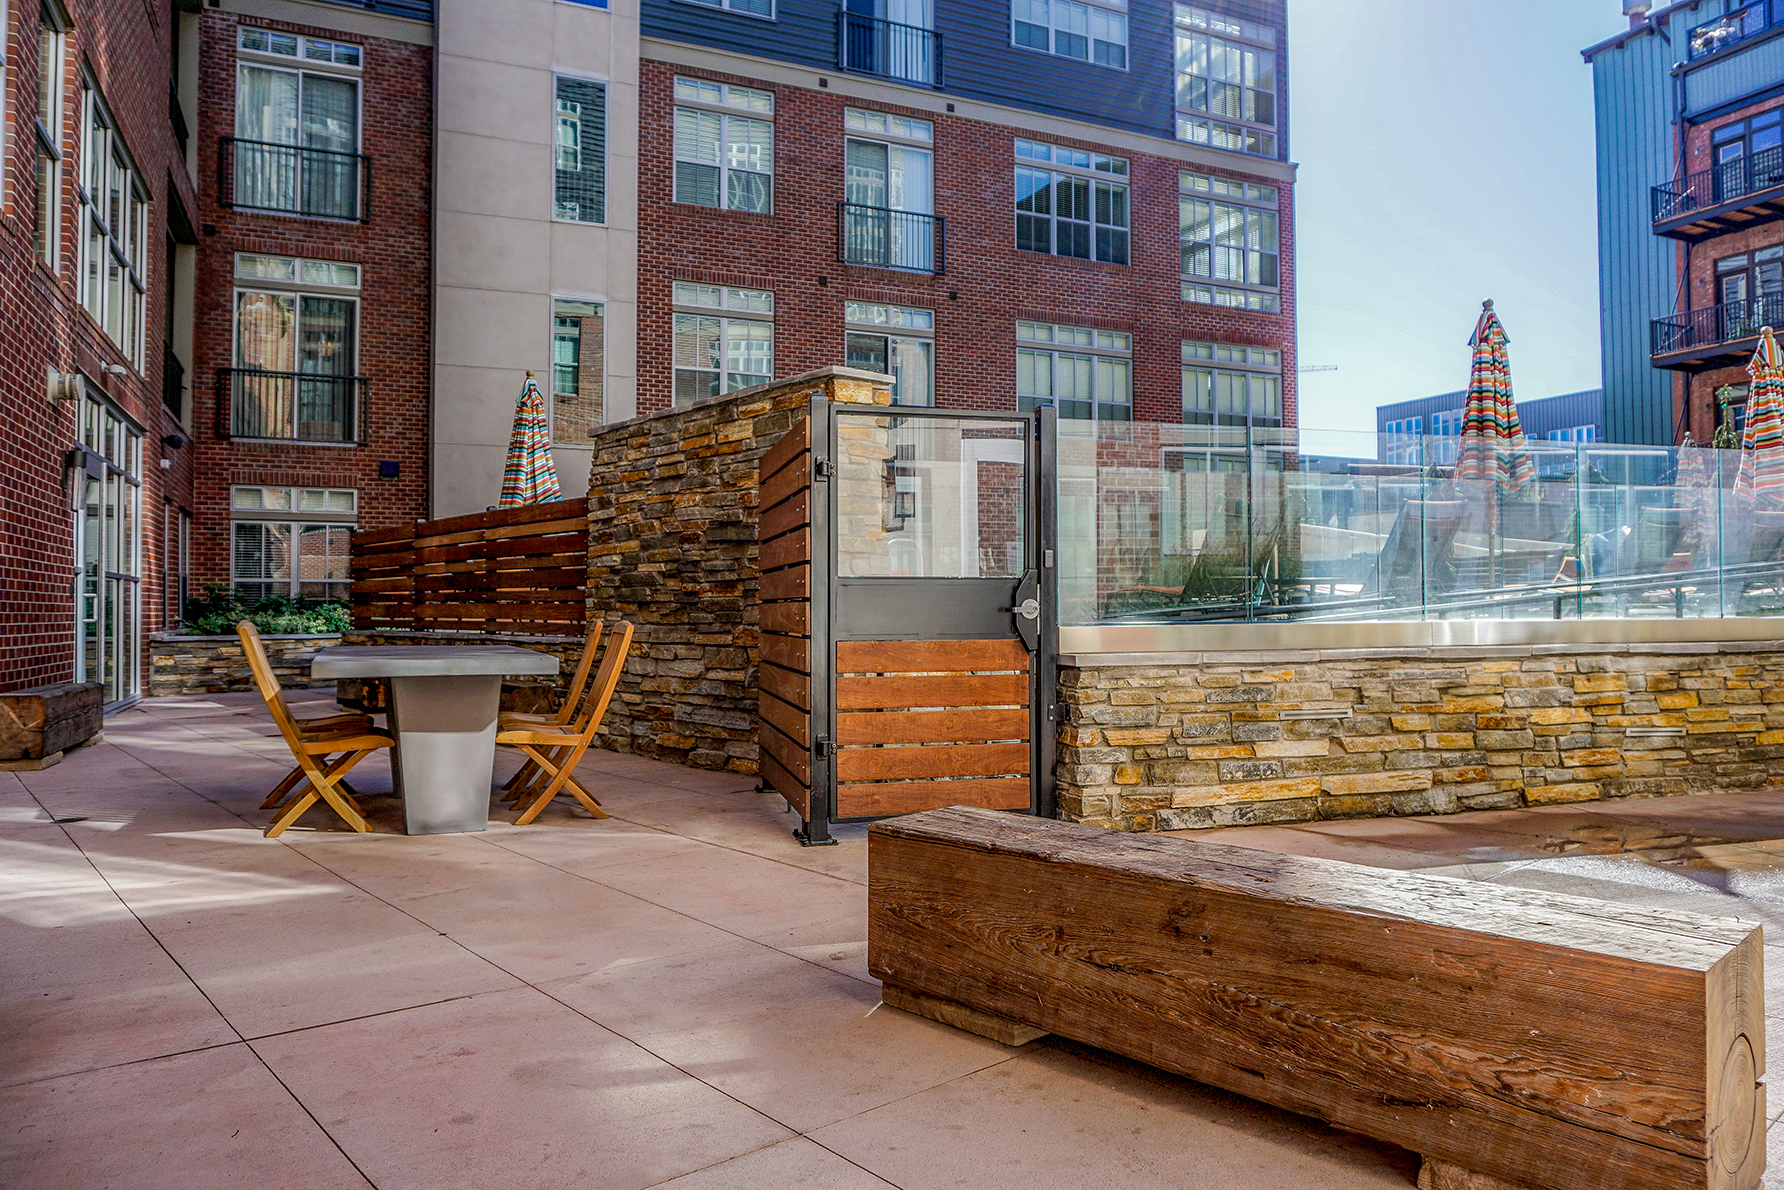 """<img src="""" studioINSITE_The_Douglas_Firepit_Seating """"alt=""""Urban Living, Multifamily Courtyard, Amenity Deck, Fire Pit, Grill Area, Shade Structure, Fireplace, Landscape Architecture, Luxury Living, the Douglas, Denver, CO, Colorado Courtyards, Amenity Spaces, Great Courtyard Designs  """" title=""""The Douglas  """"/>"""